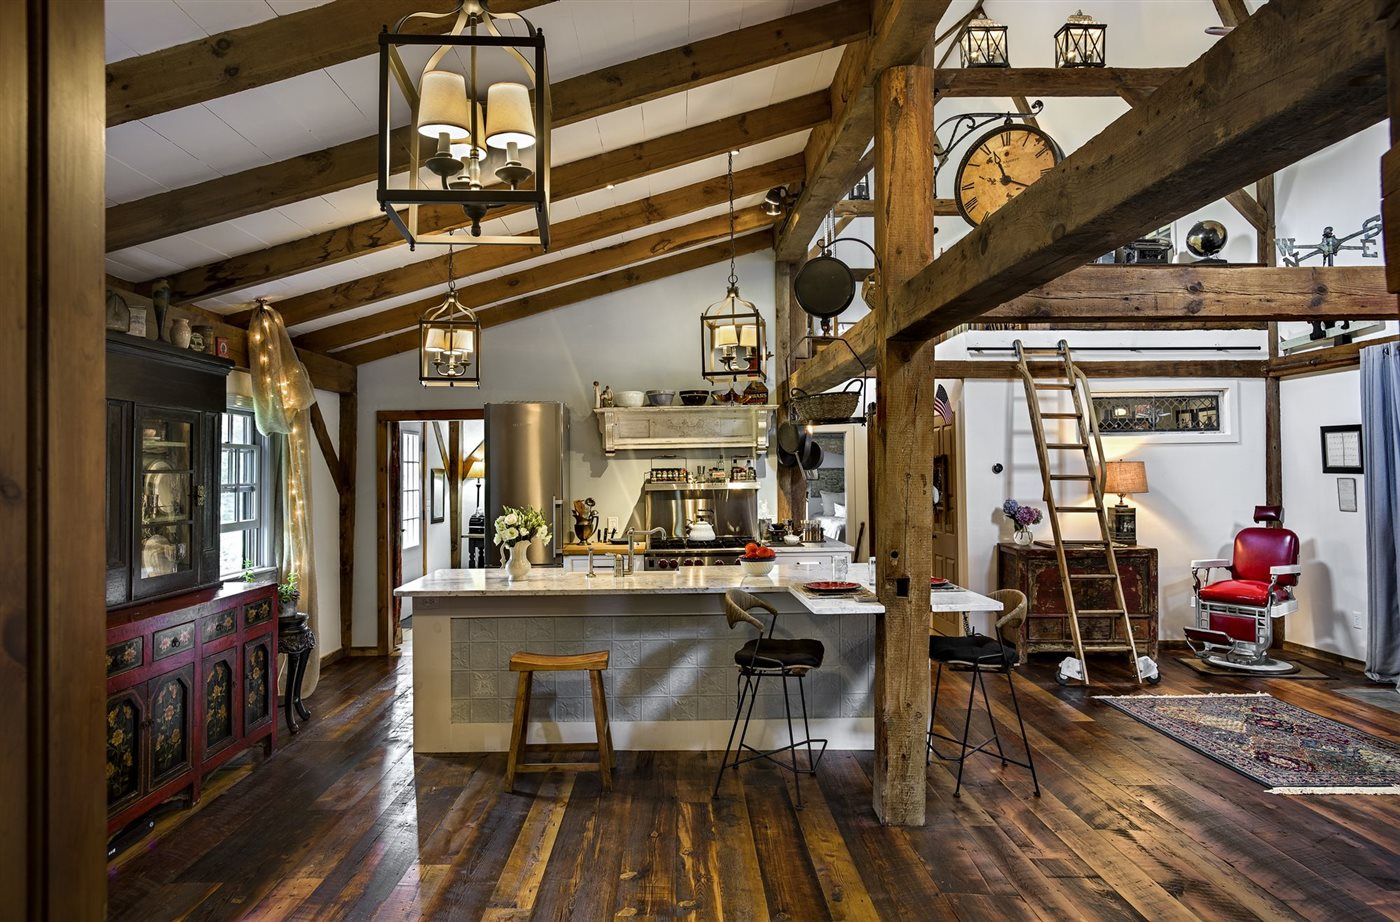 renovated barn into modern wood and rustic interior